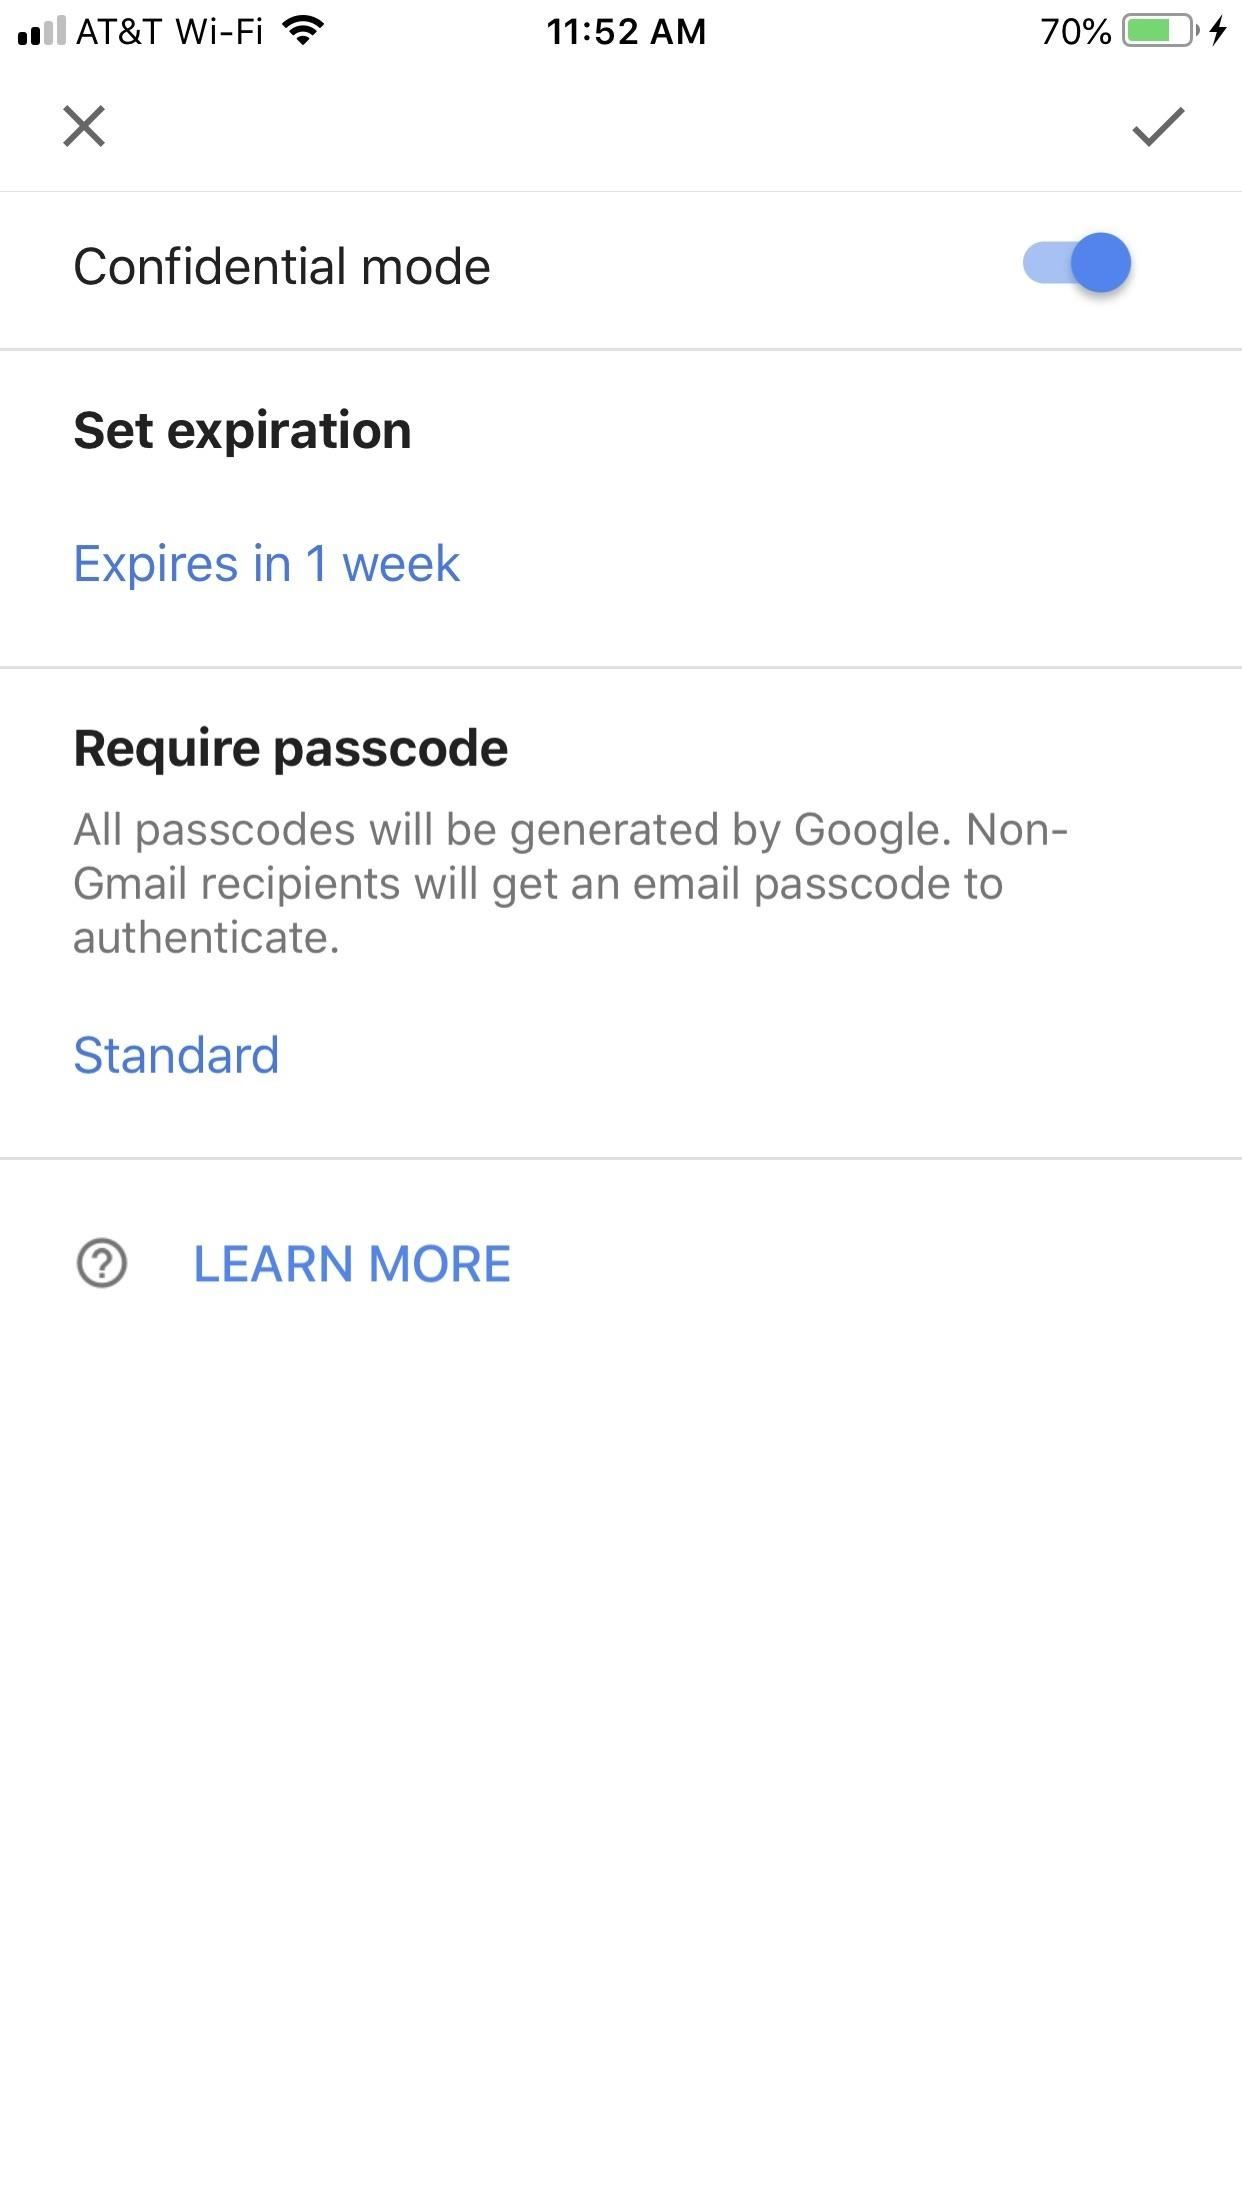 Using Gmail's New Confidential Mode to send private, self-destructive emails from your phone